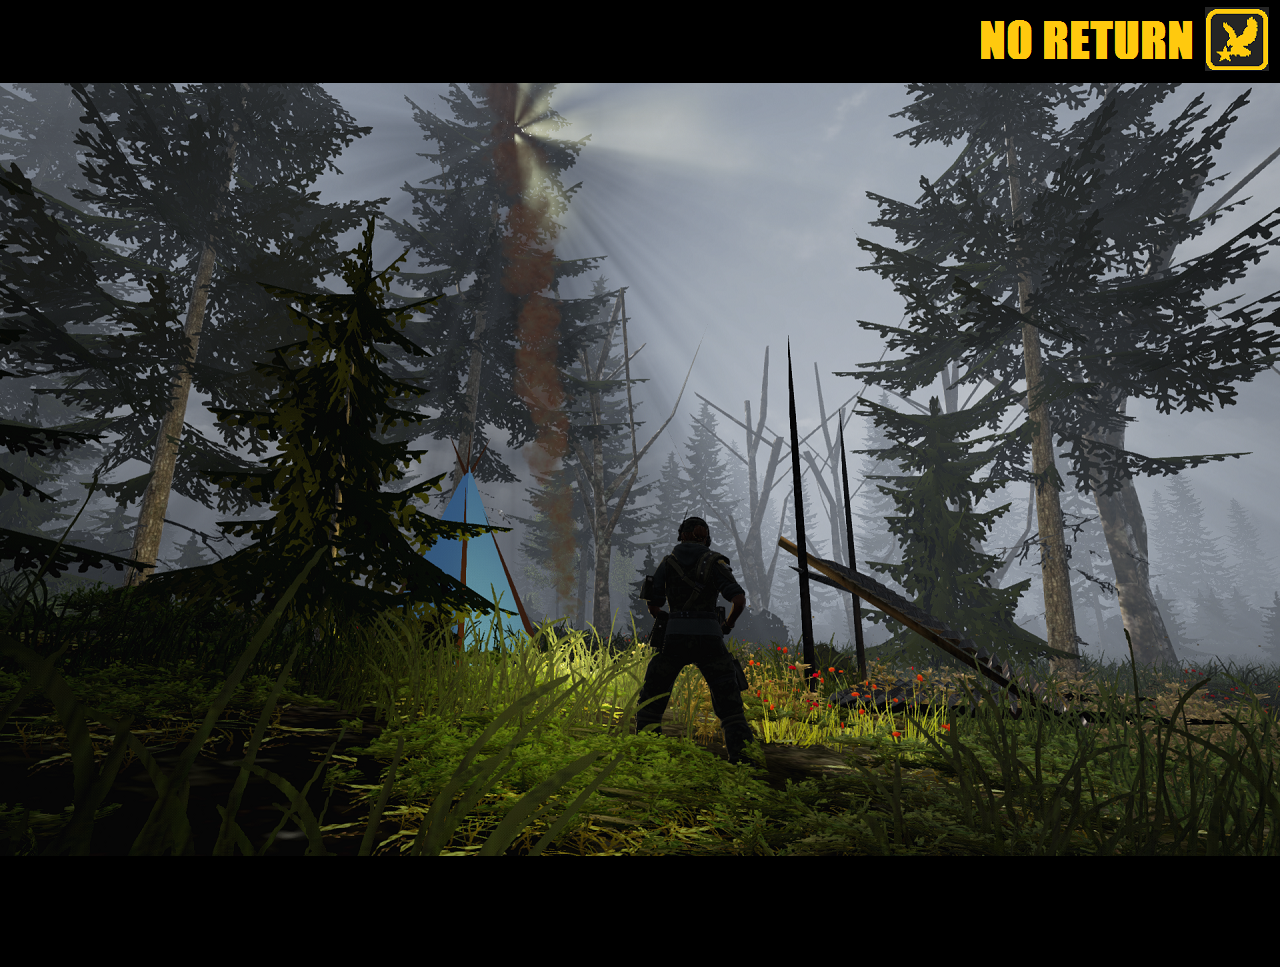 Survival Game 2016 Images - NO RETURN Survival & Hunting Game